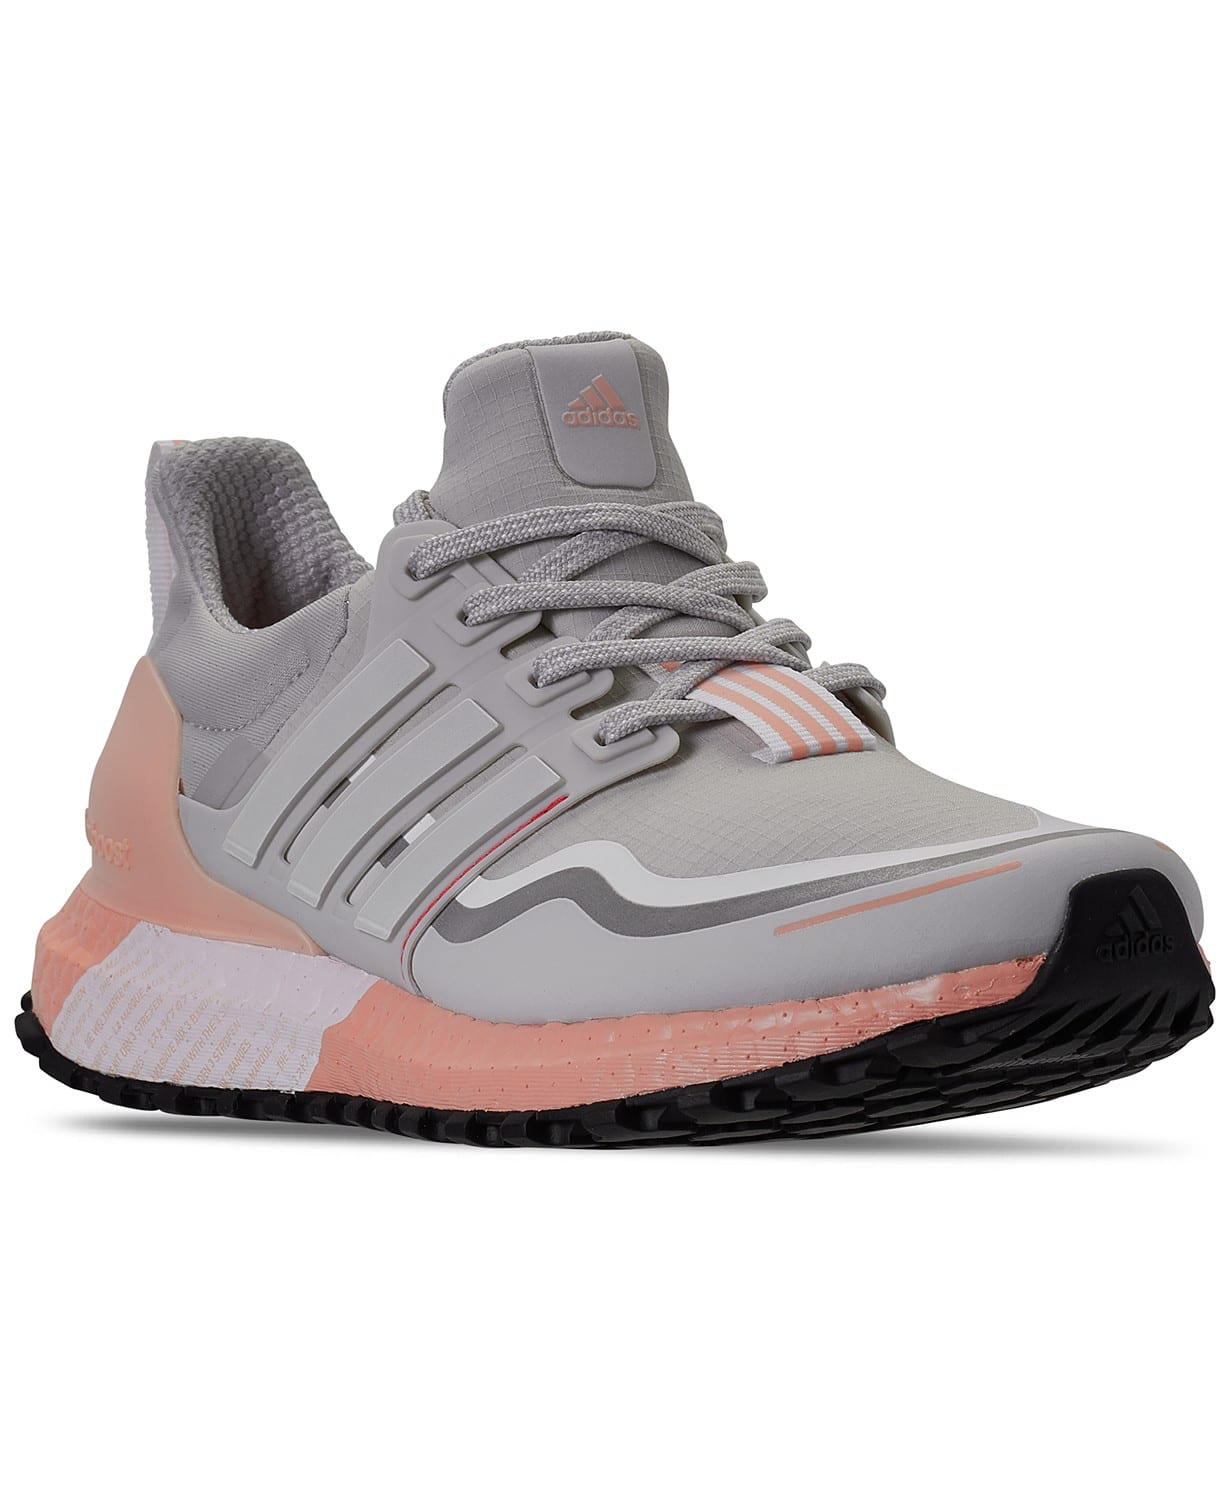 adidas Women's Ultraboost Guard Running Sneakers (grey/white/pink)